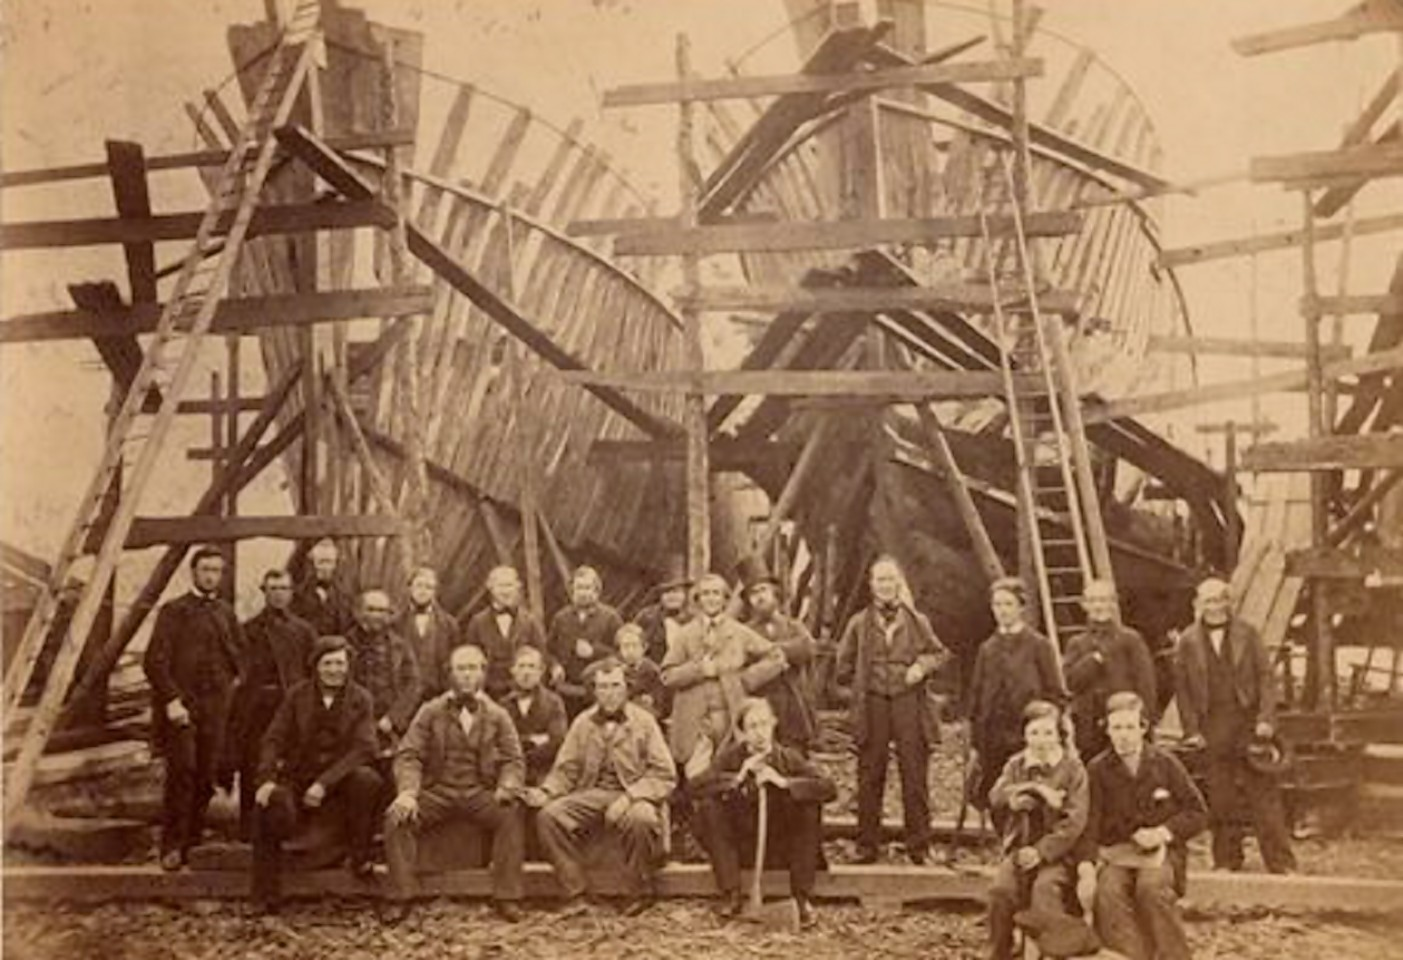 The shipyard of Aberdeen's Alexander Hall and Sons - who built the SS Aberdon